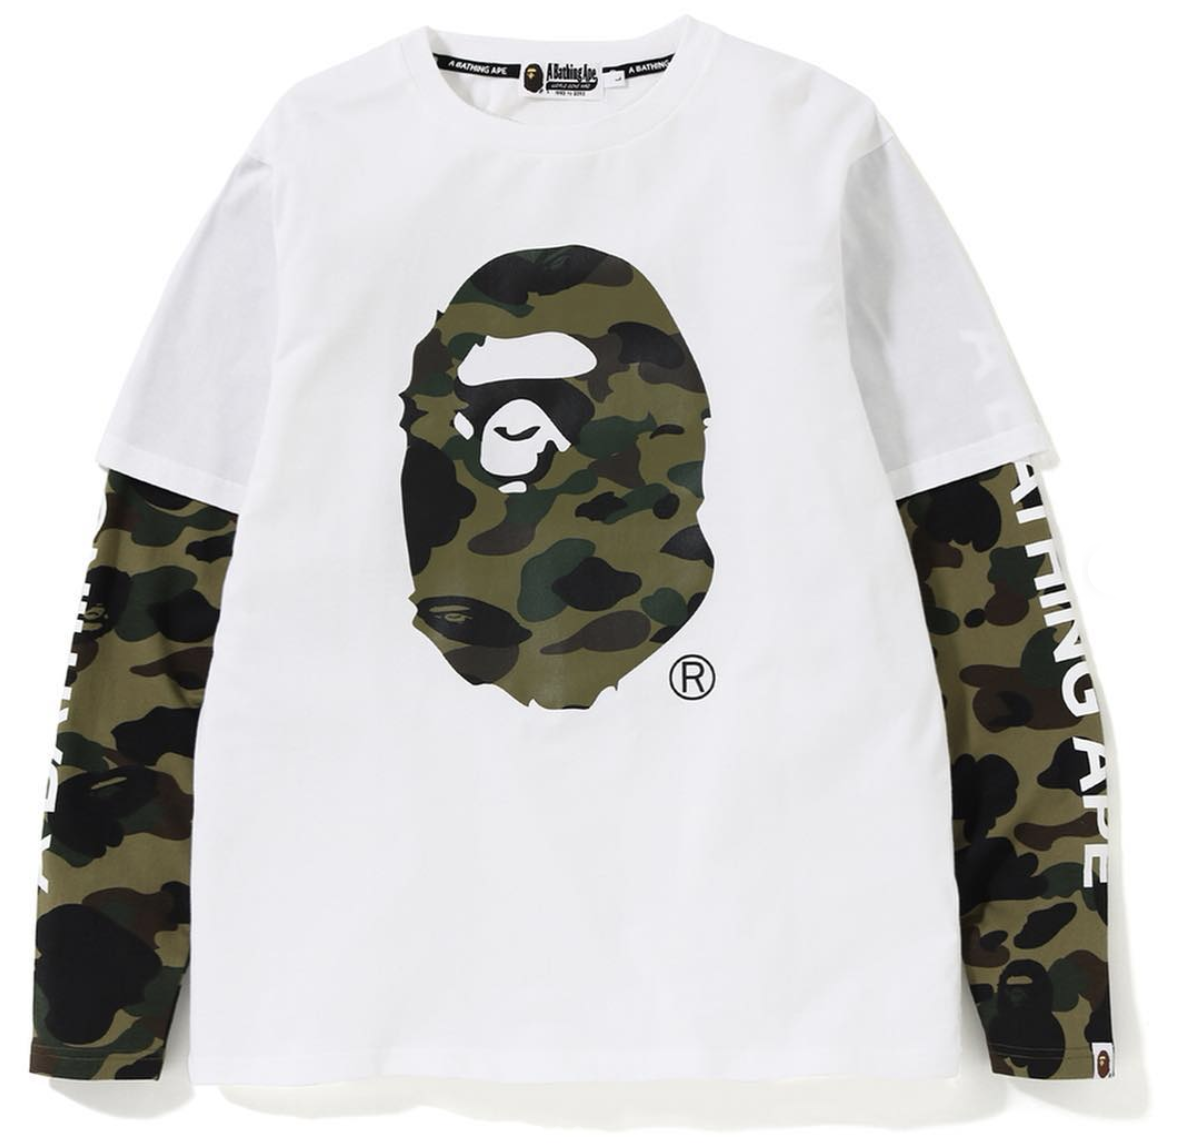 b7616a3f7 Bape 1st Camo Ape Head Layered LS Tee White   Novelship: Buy and Sell  Sneakers, Streetwear, 100% Authentic